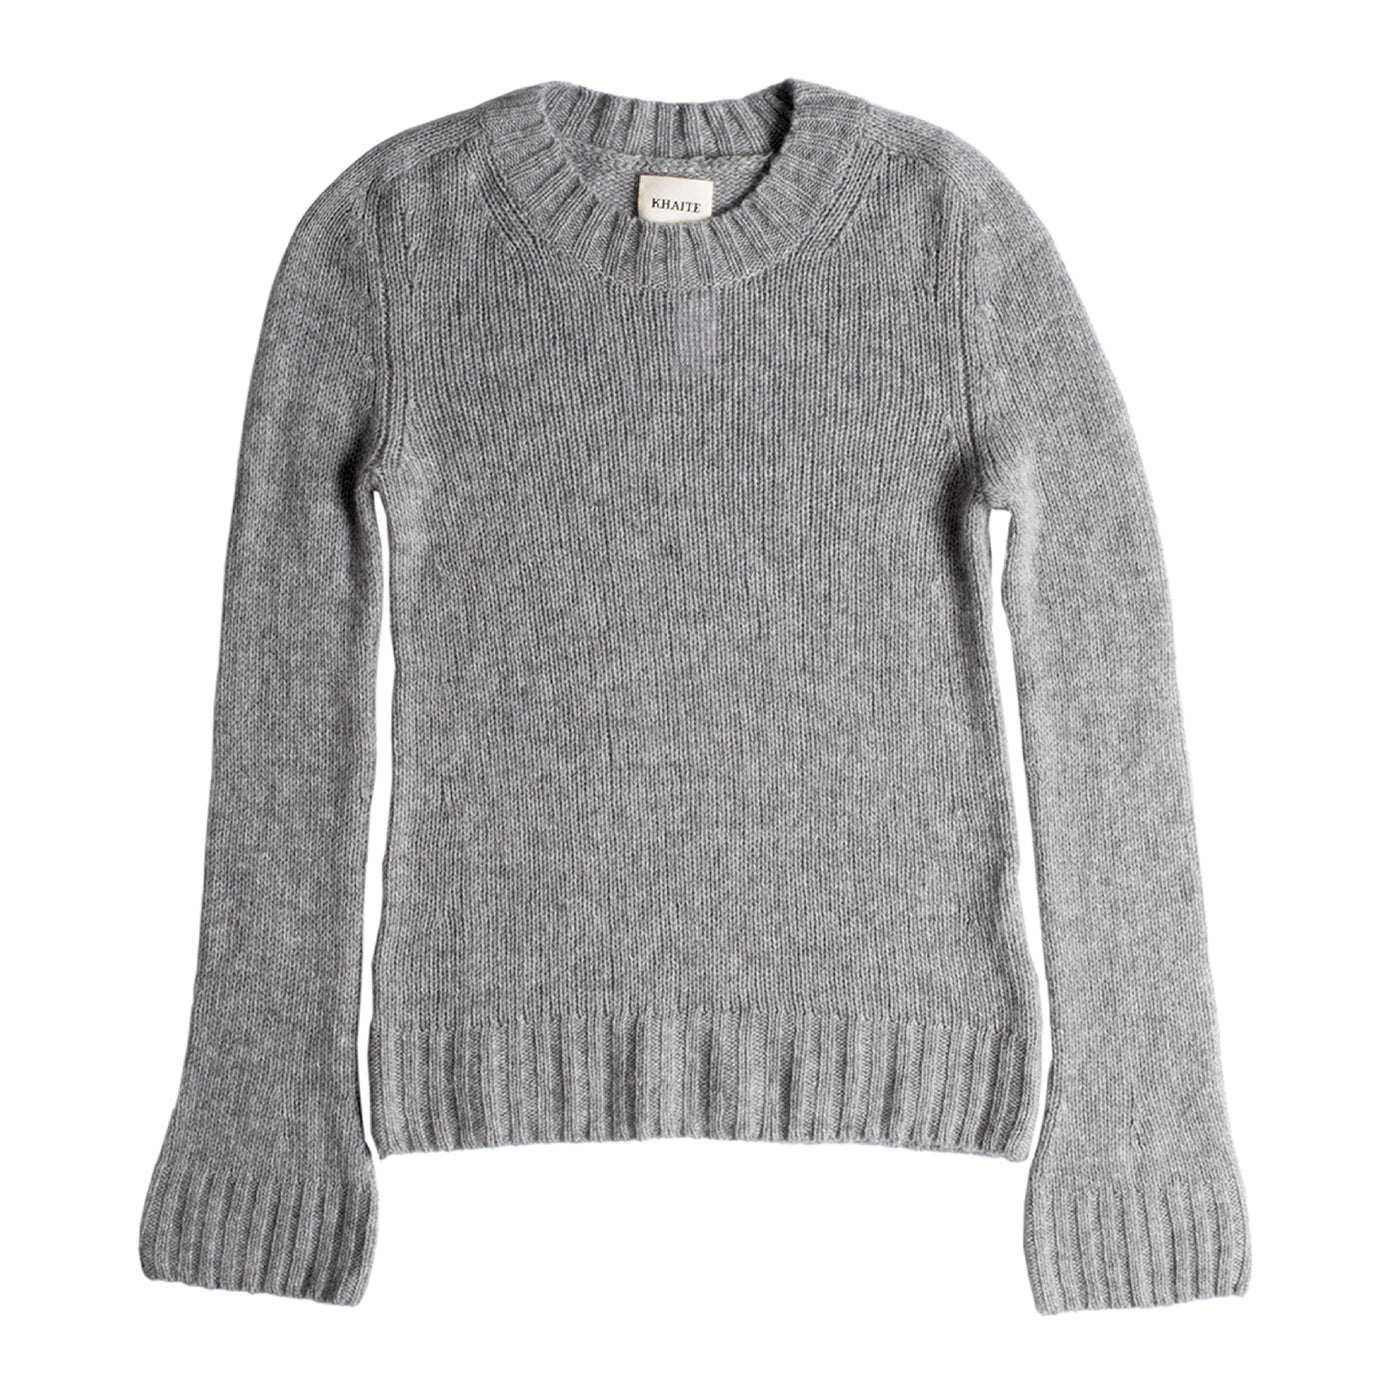 Load image into Gallery viewer, KHAITE MARY JANE PULLOVER SWEATER GREY